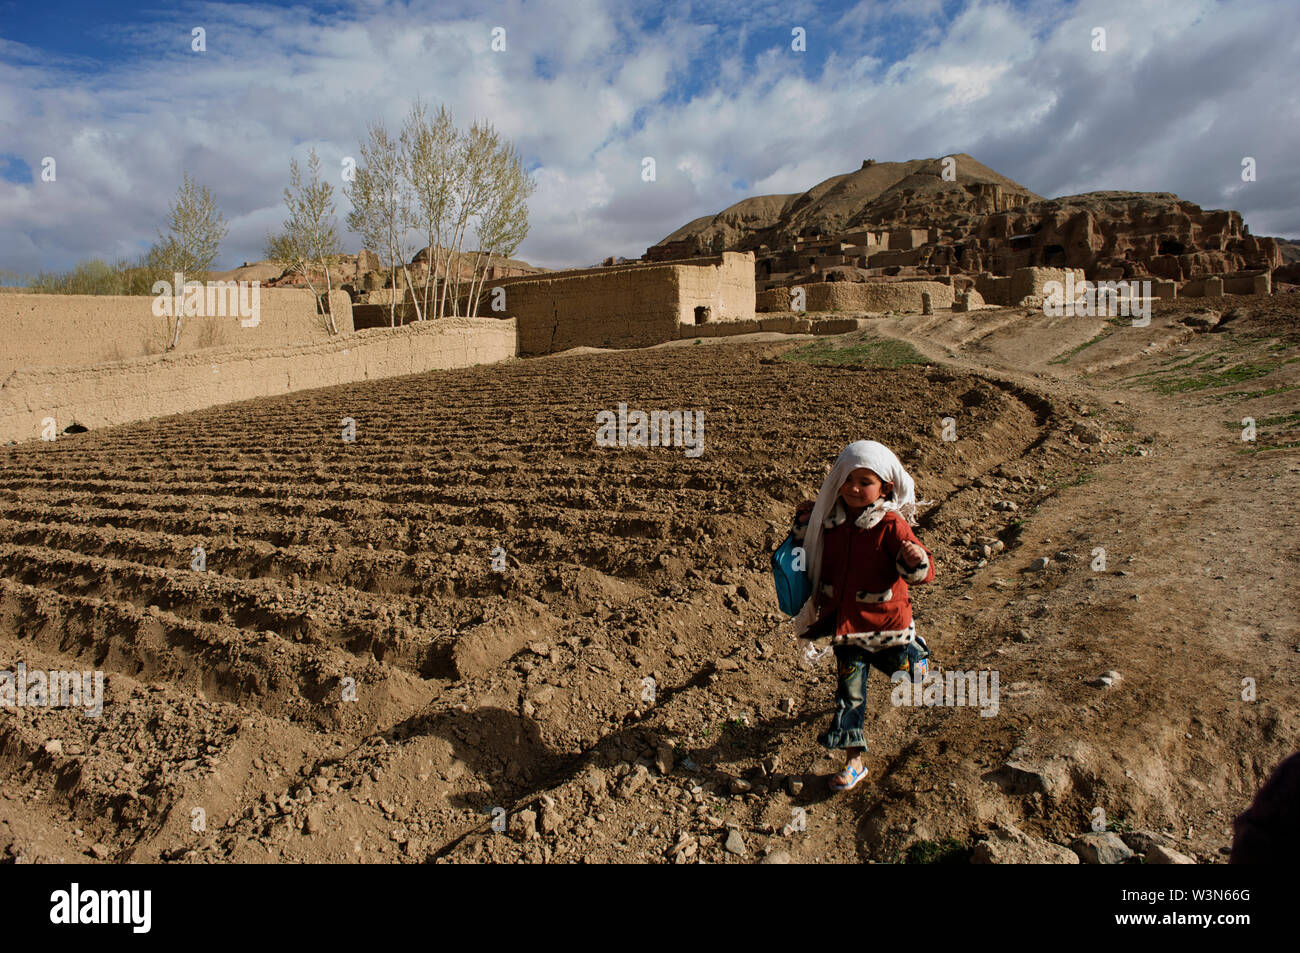 A child on her way to school from her village on the hills of Bamyan, in Bamyan province, Afghanistan. May 11, 2009. - Stock Image